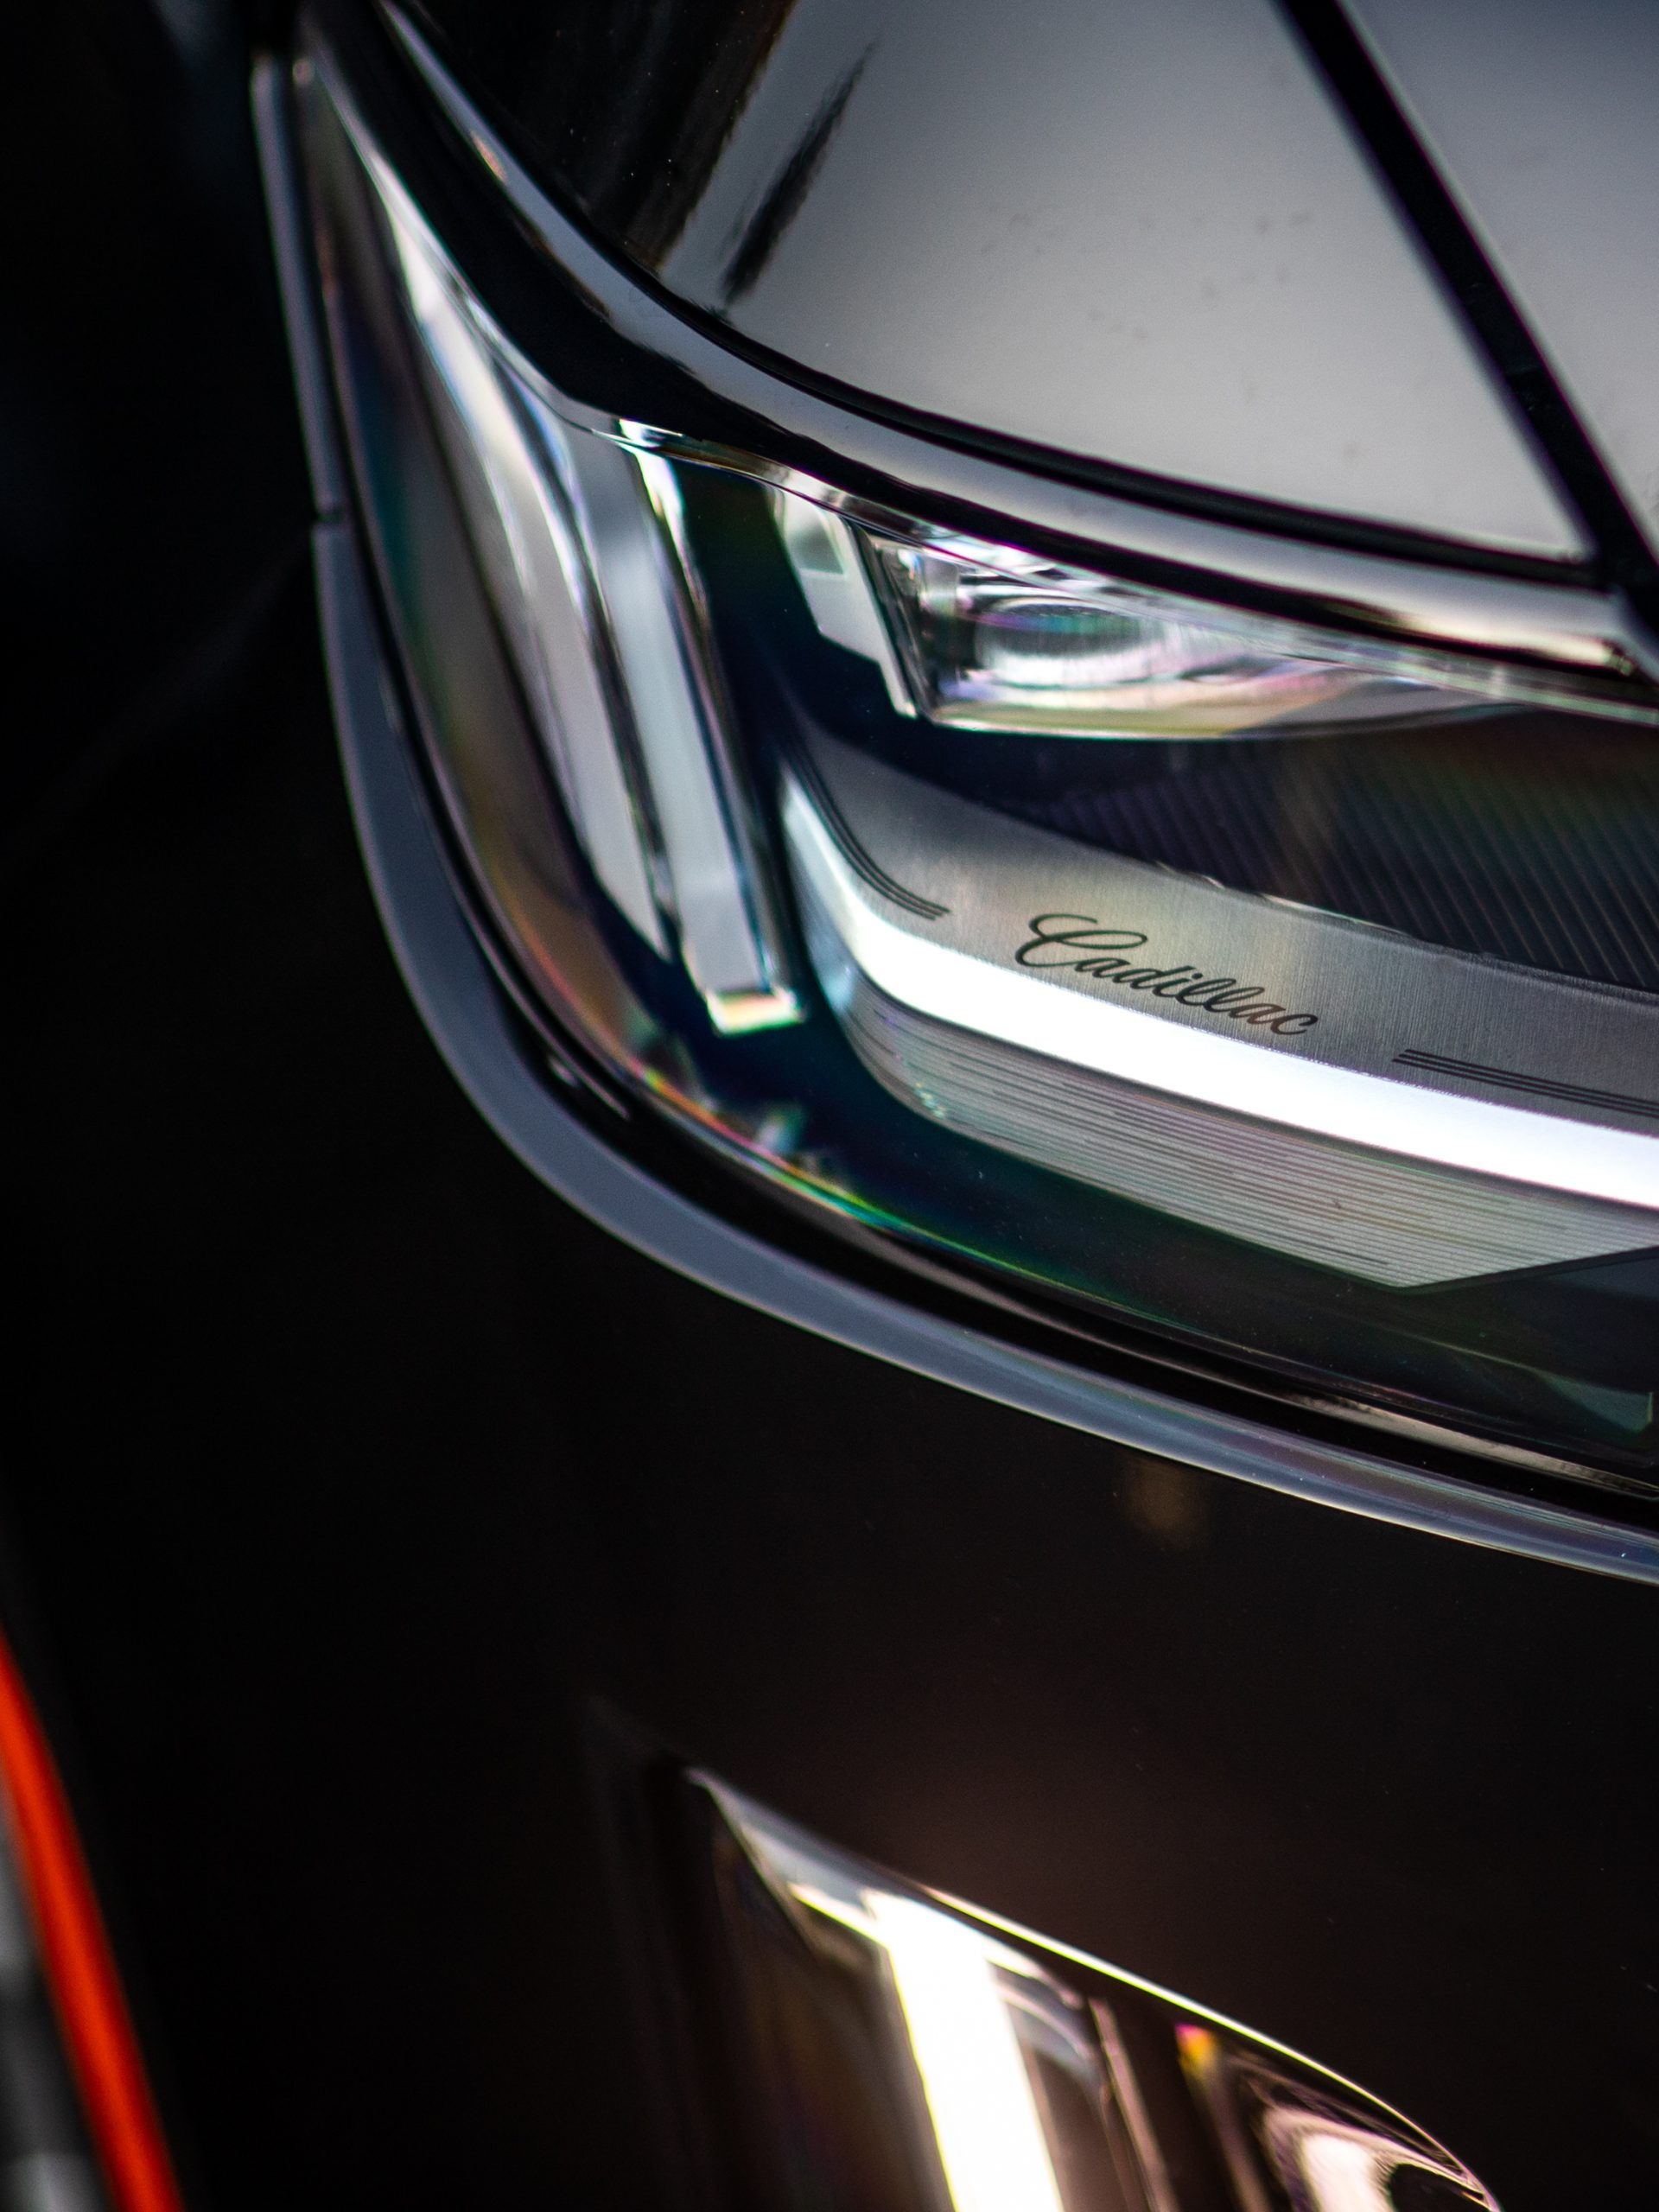 cadillac escalade headlight close up